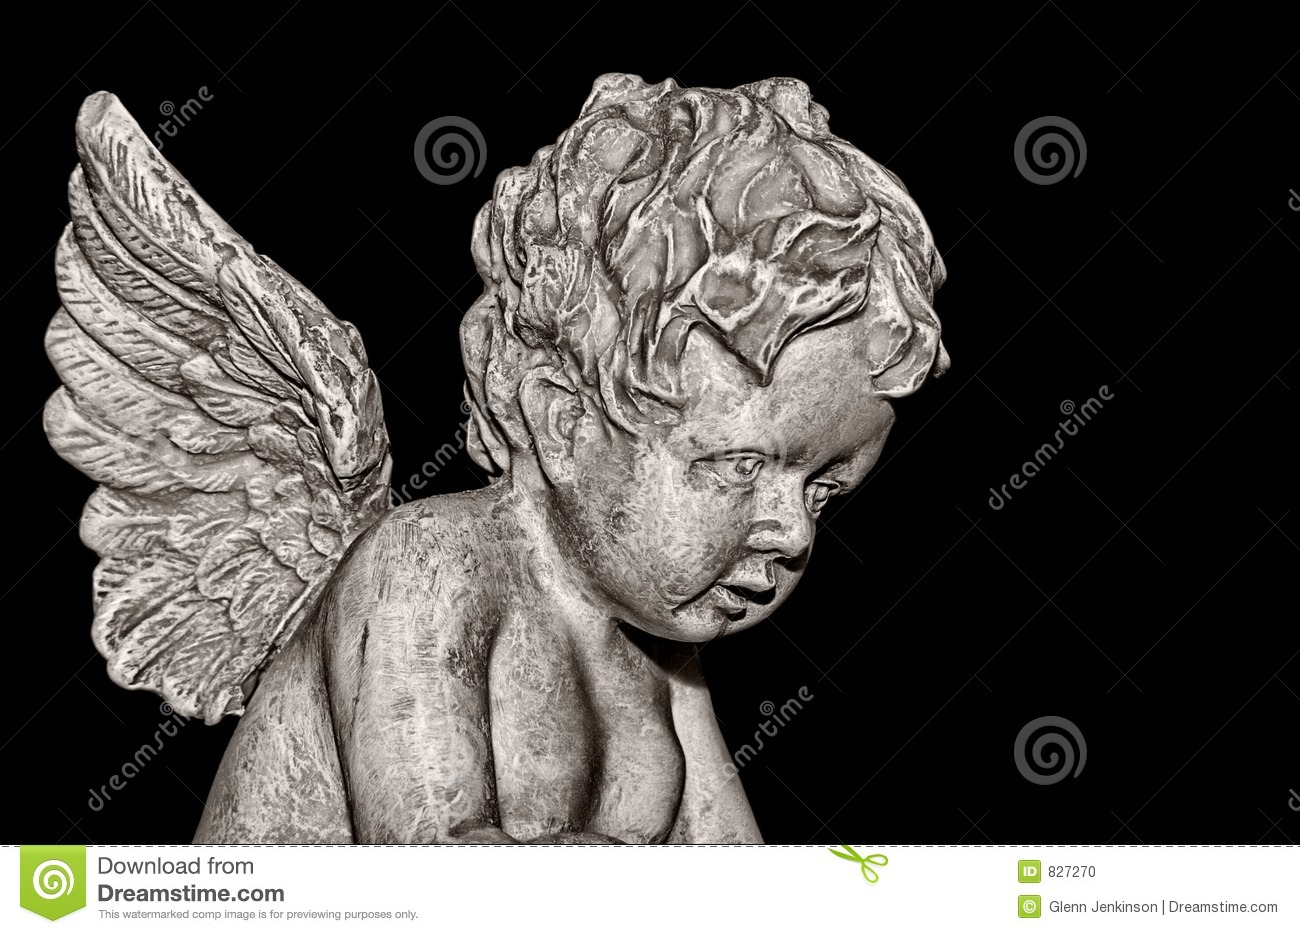 Cherub on black